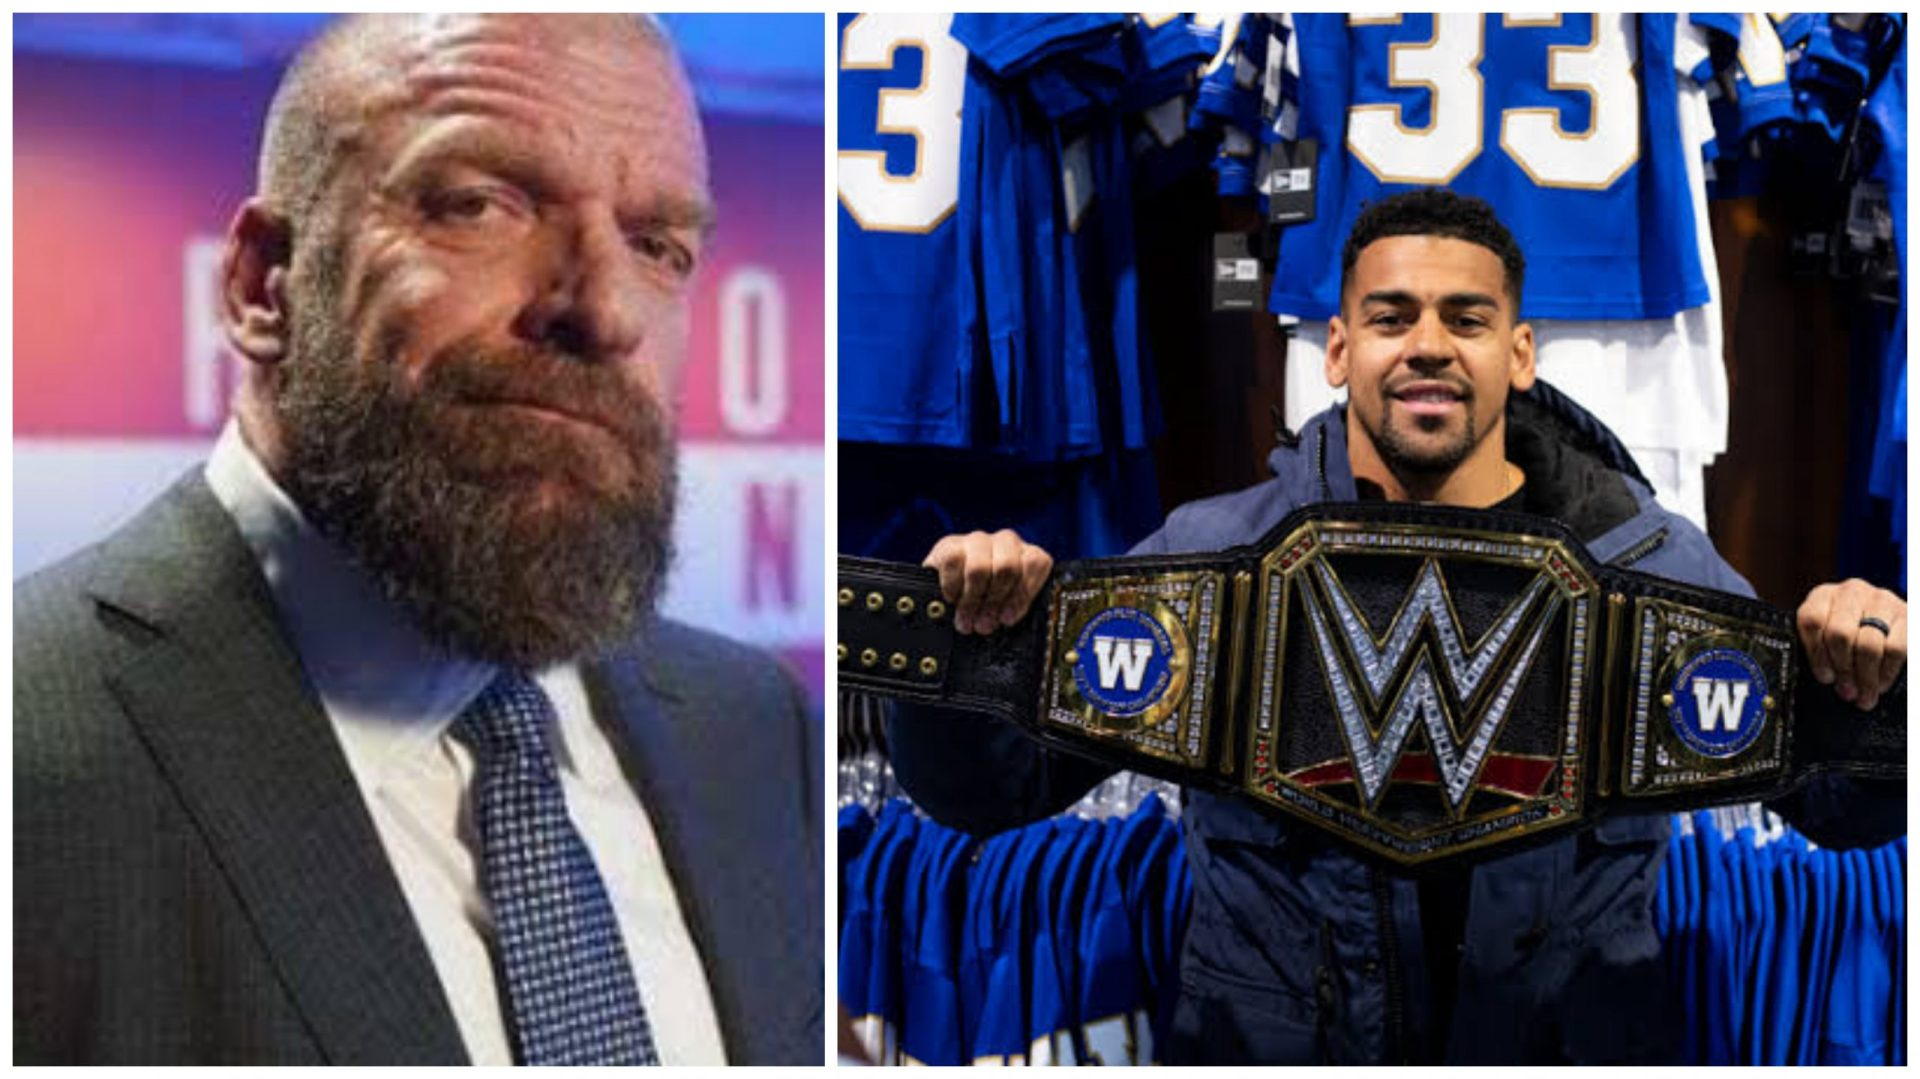 Triple H discusses WWE's tradition of sending championships to winning sports teams - THE SPORTS ROOM